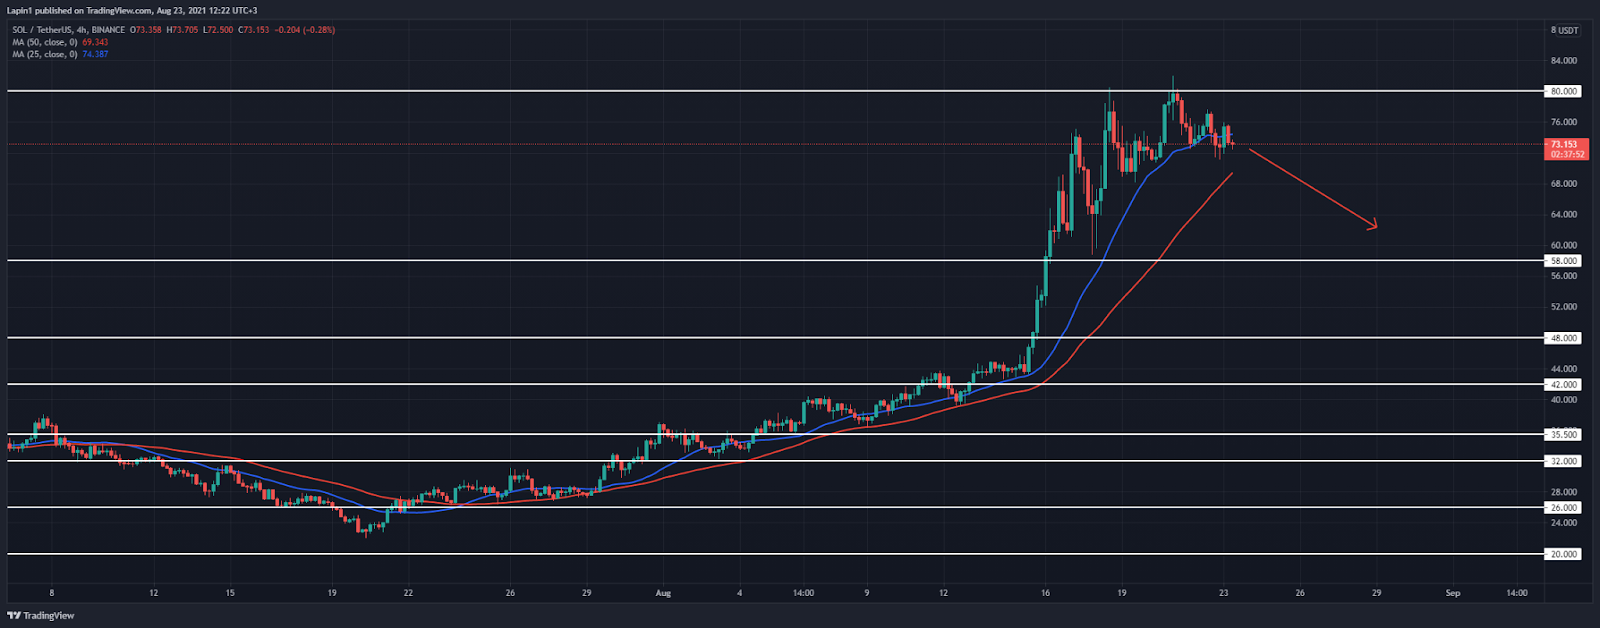 Solana Price Analysis: SOL slowly starts to retrace from $80, set to retest previous all-time high?